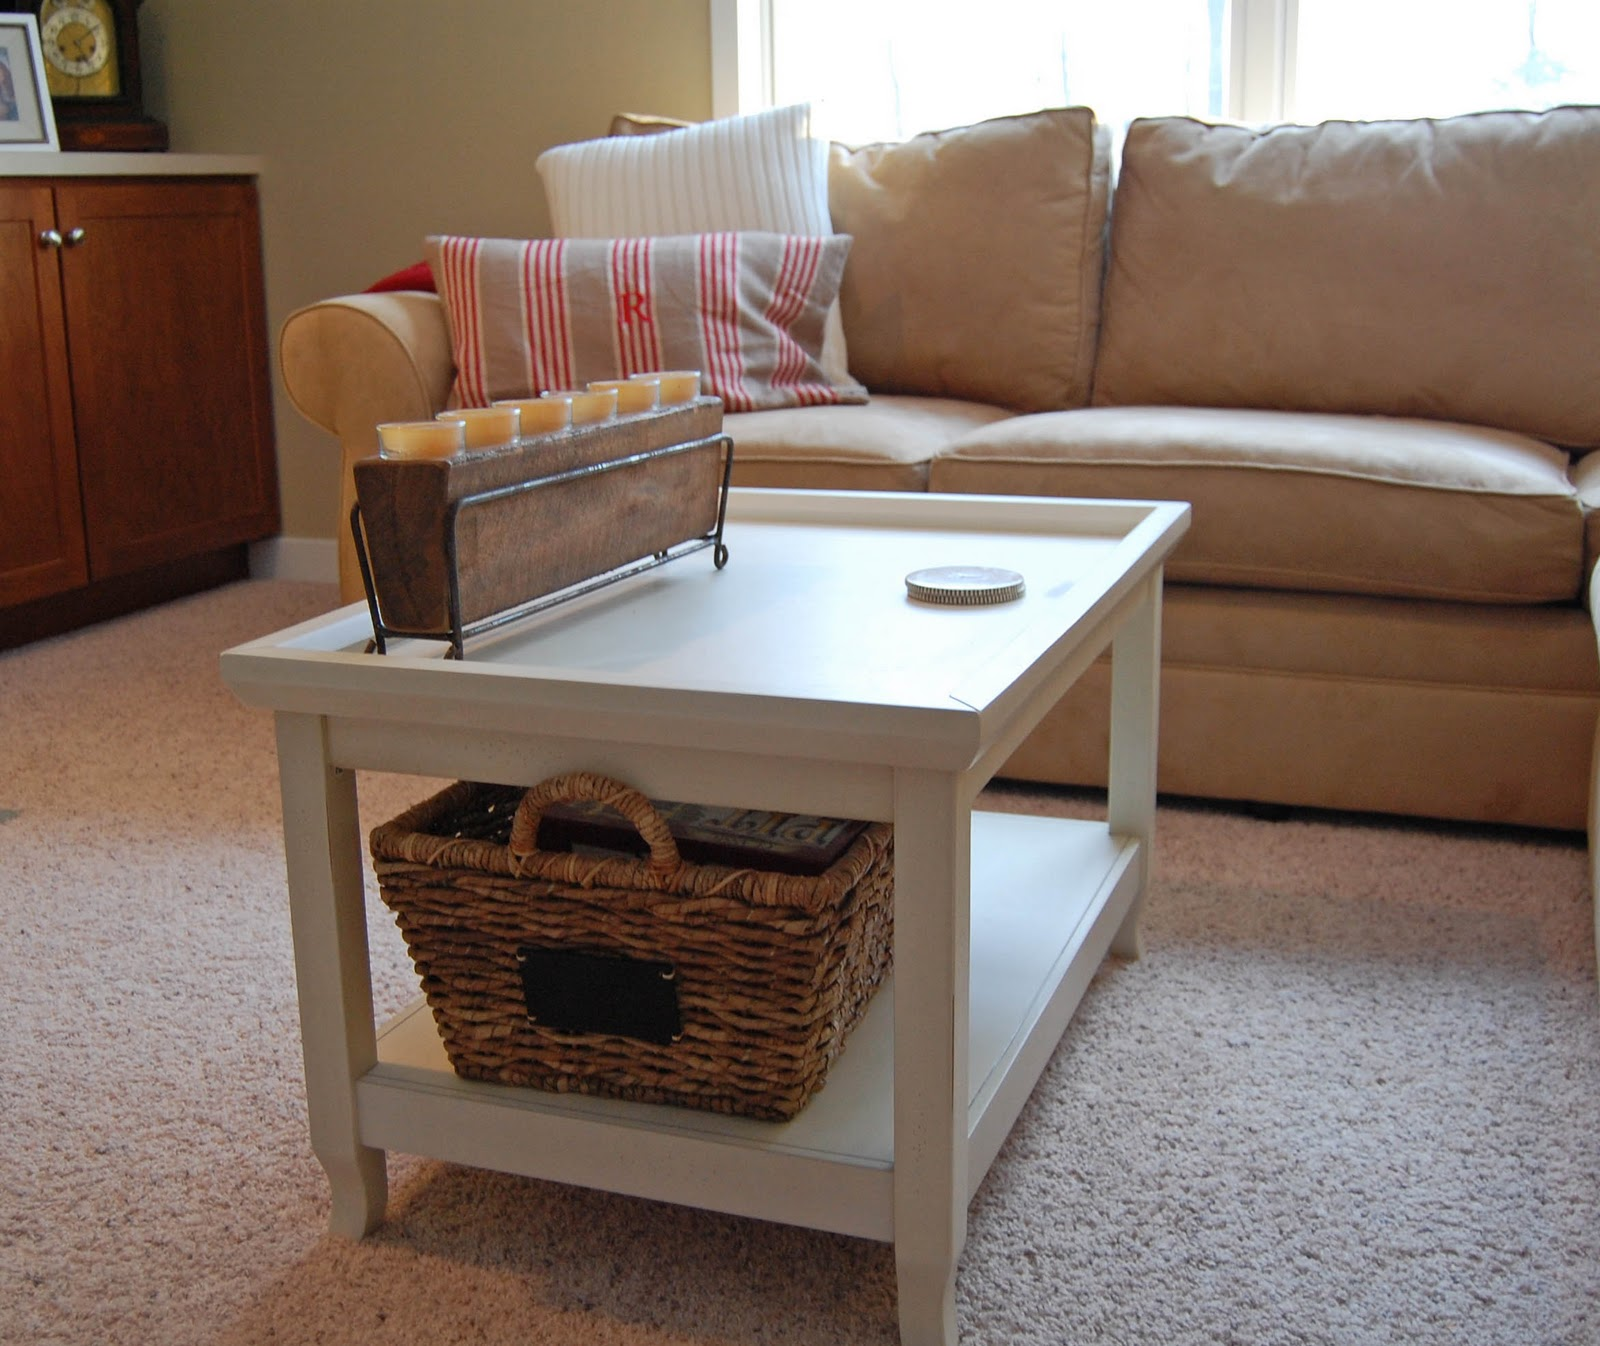 Coffee Table With Baskets: Baskets Under Coffee Table